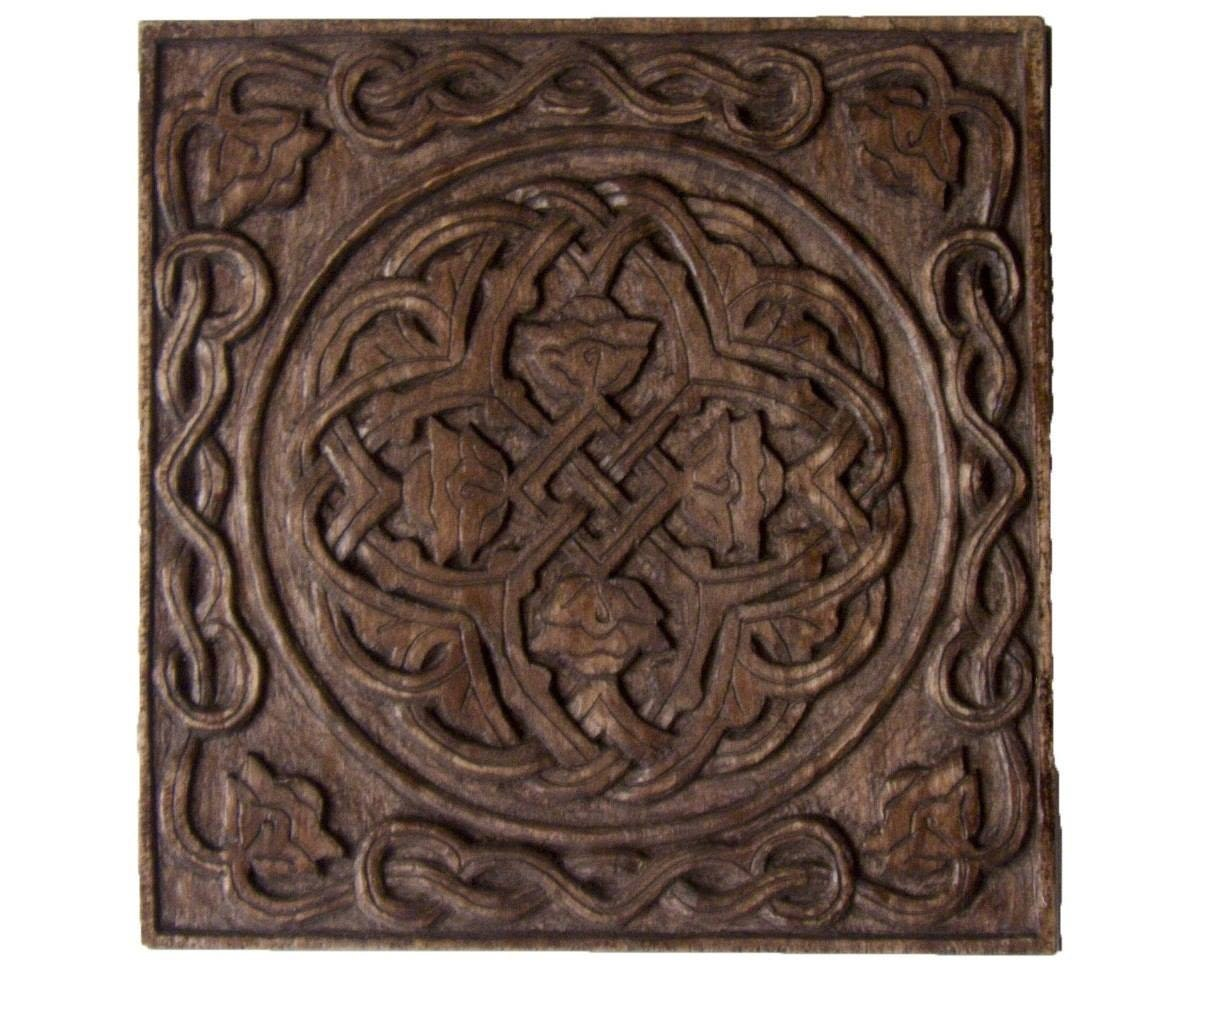 Flowers carved box artistic wood carving plain relief wood